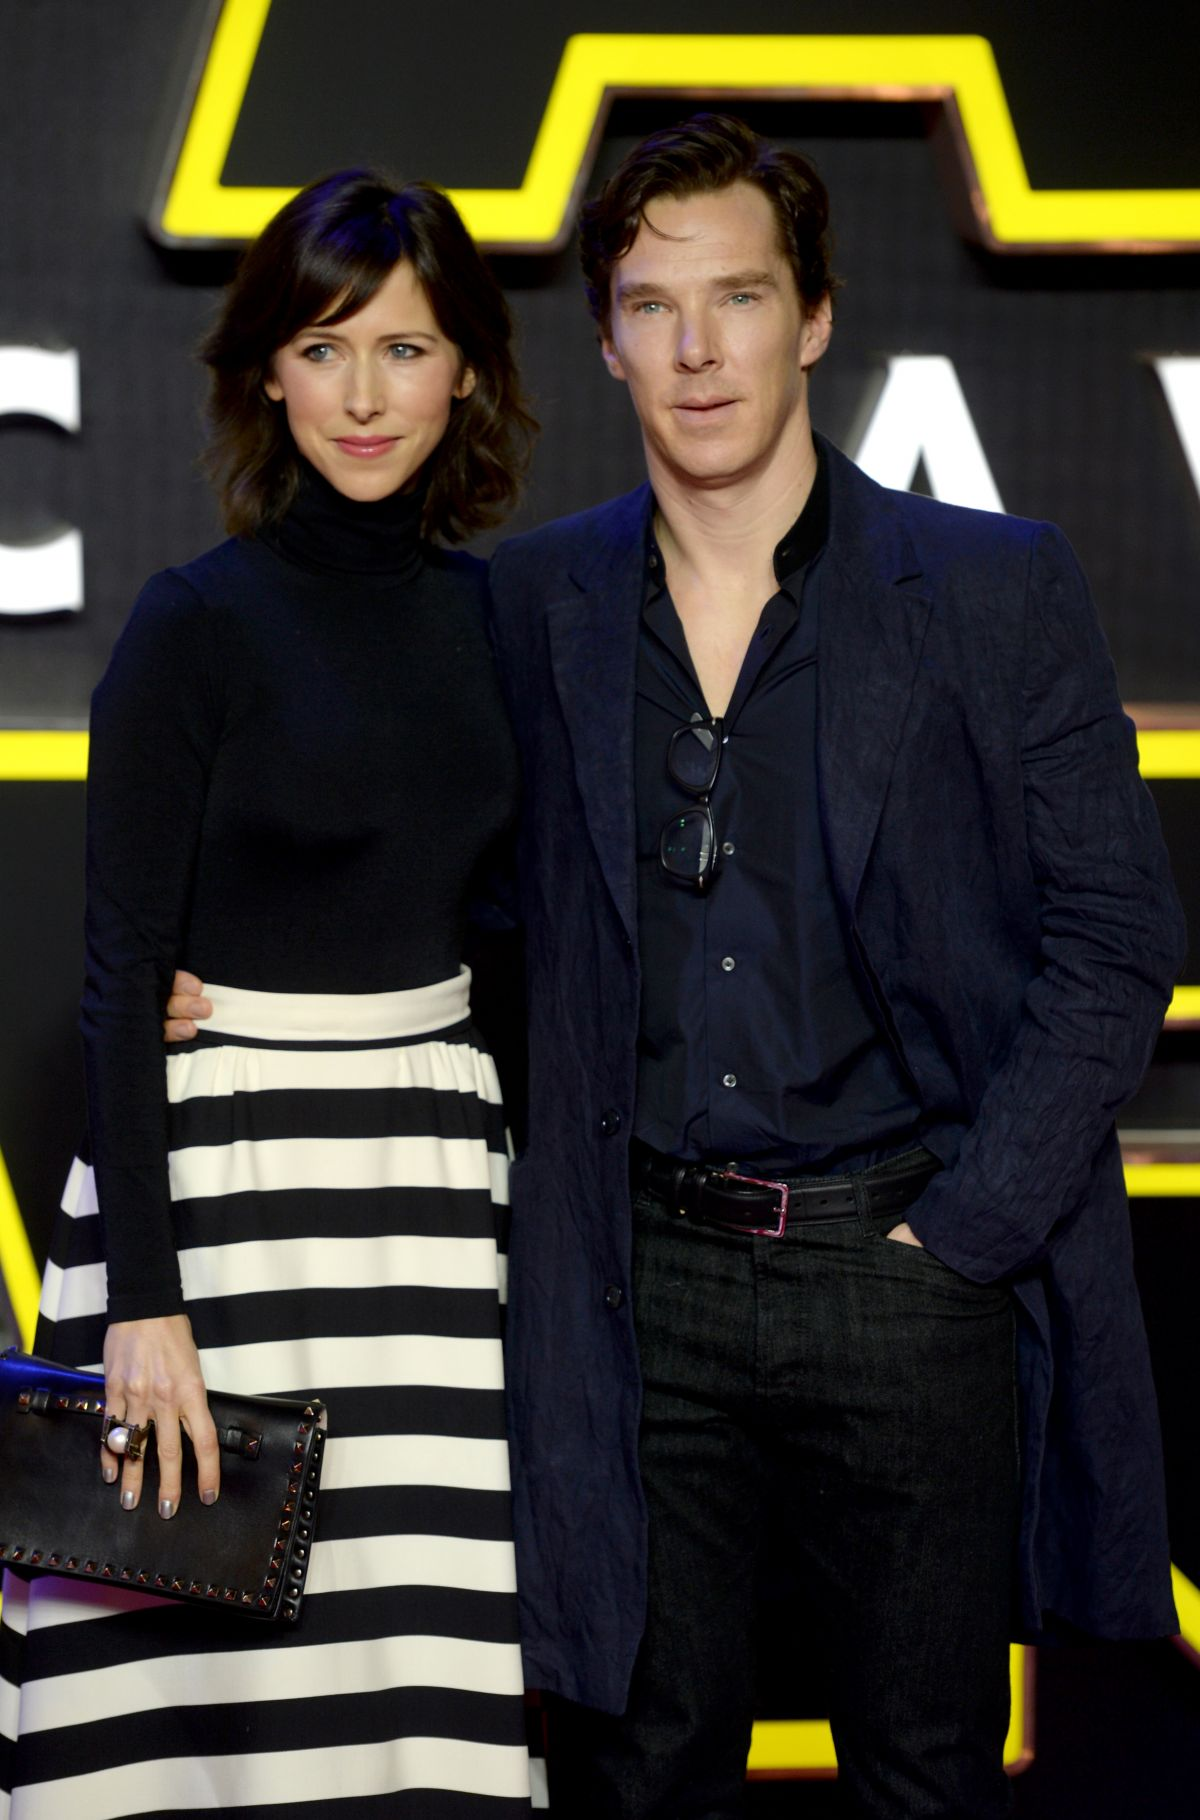 SOPHIE HUNTER at Star Wars: The Force Awakens Premiere in London 12/16/2015